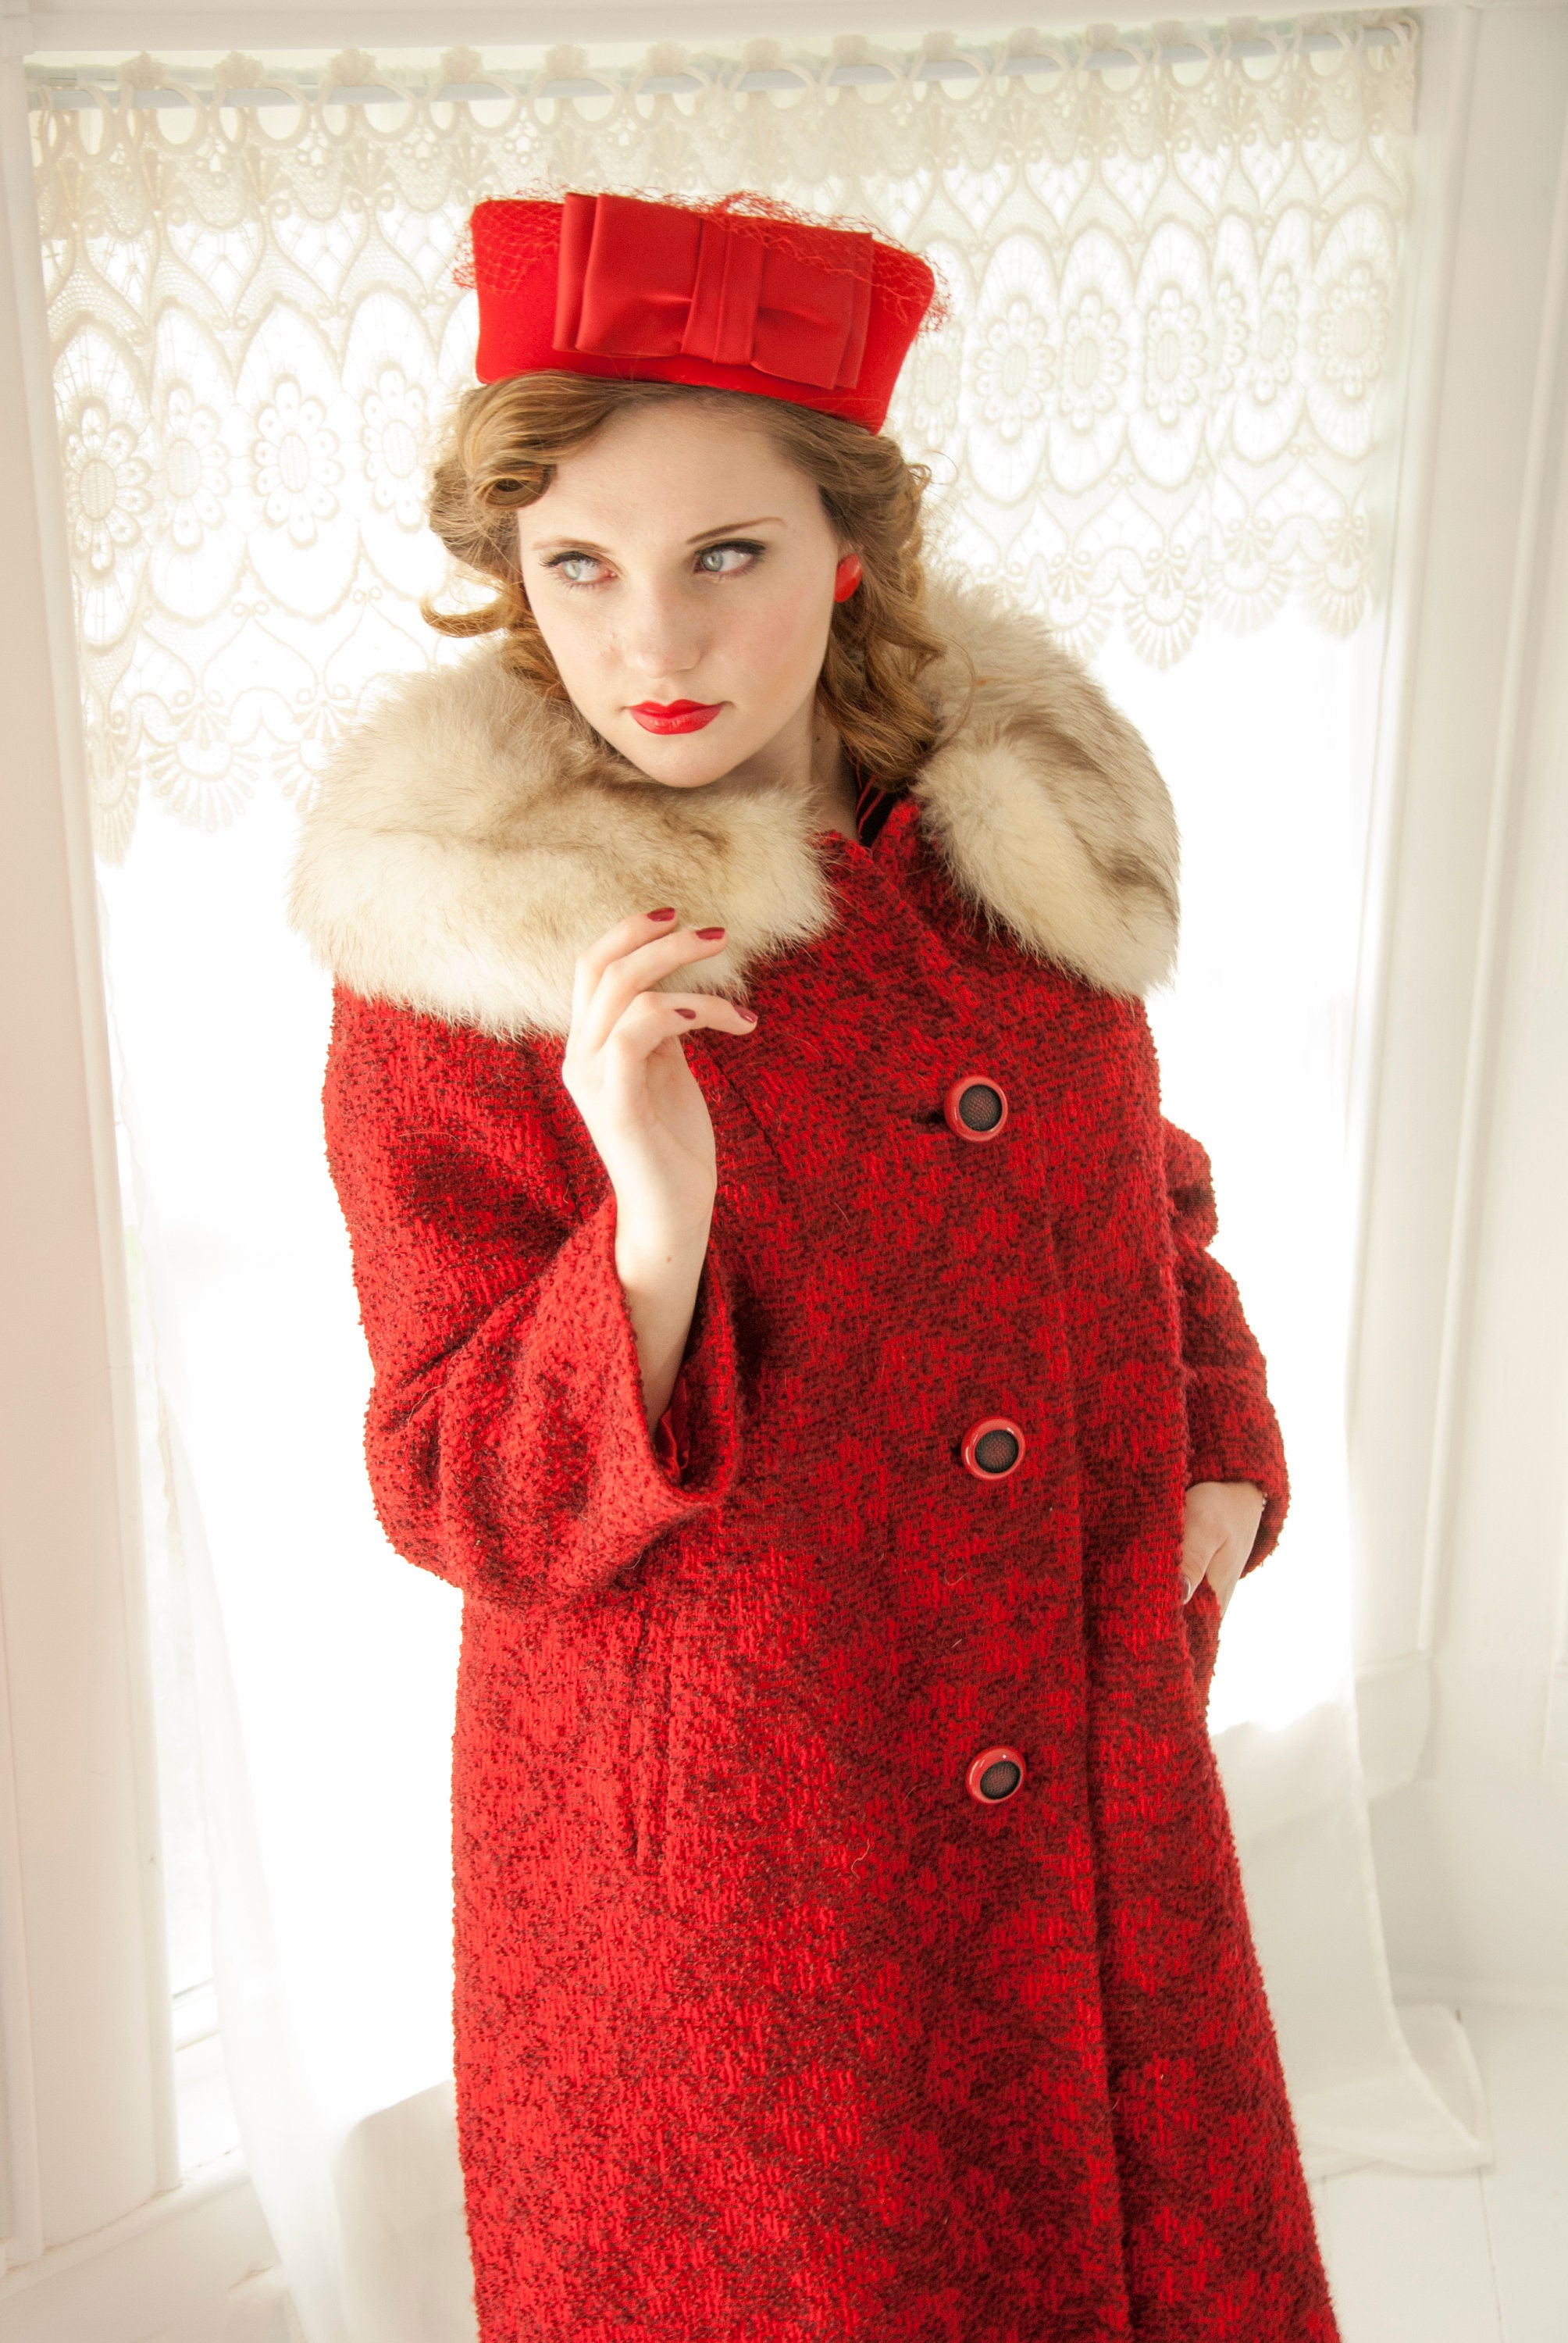 dfd3048ce3996 Vintage 1950s red floral coat white fox fur collar black